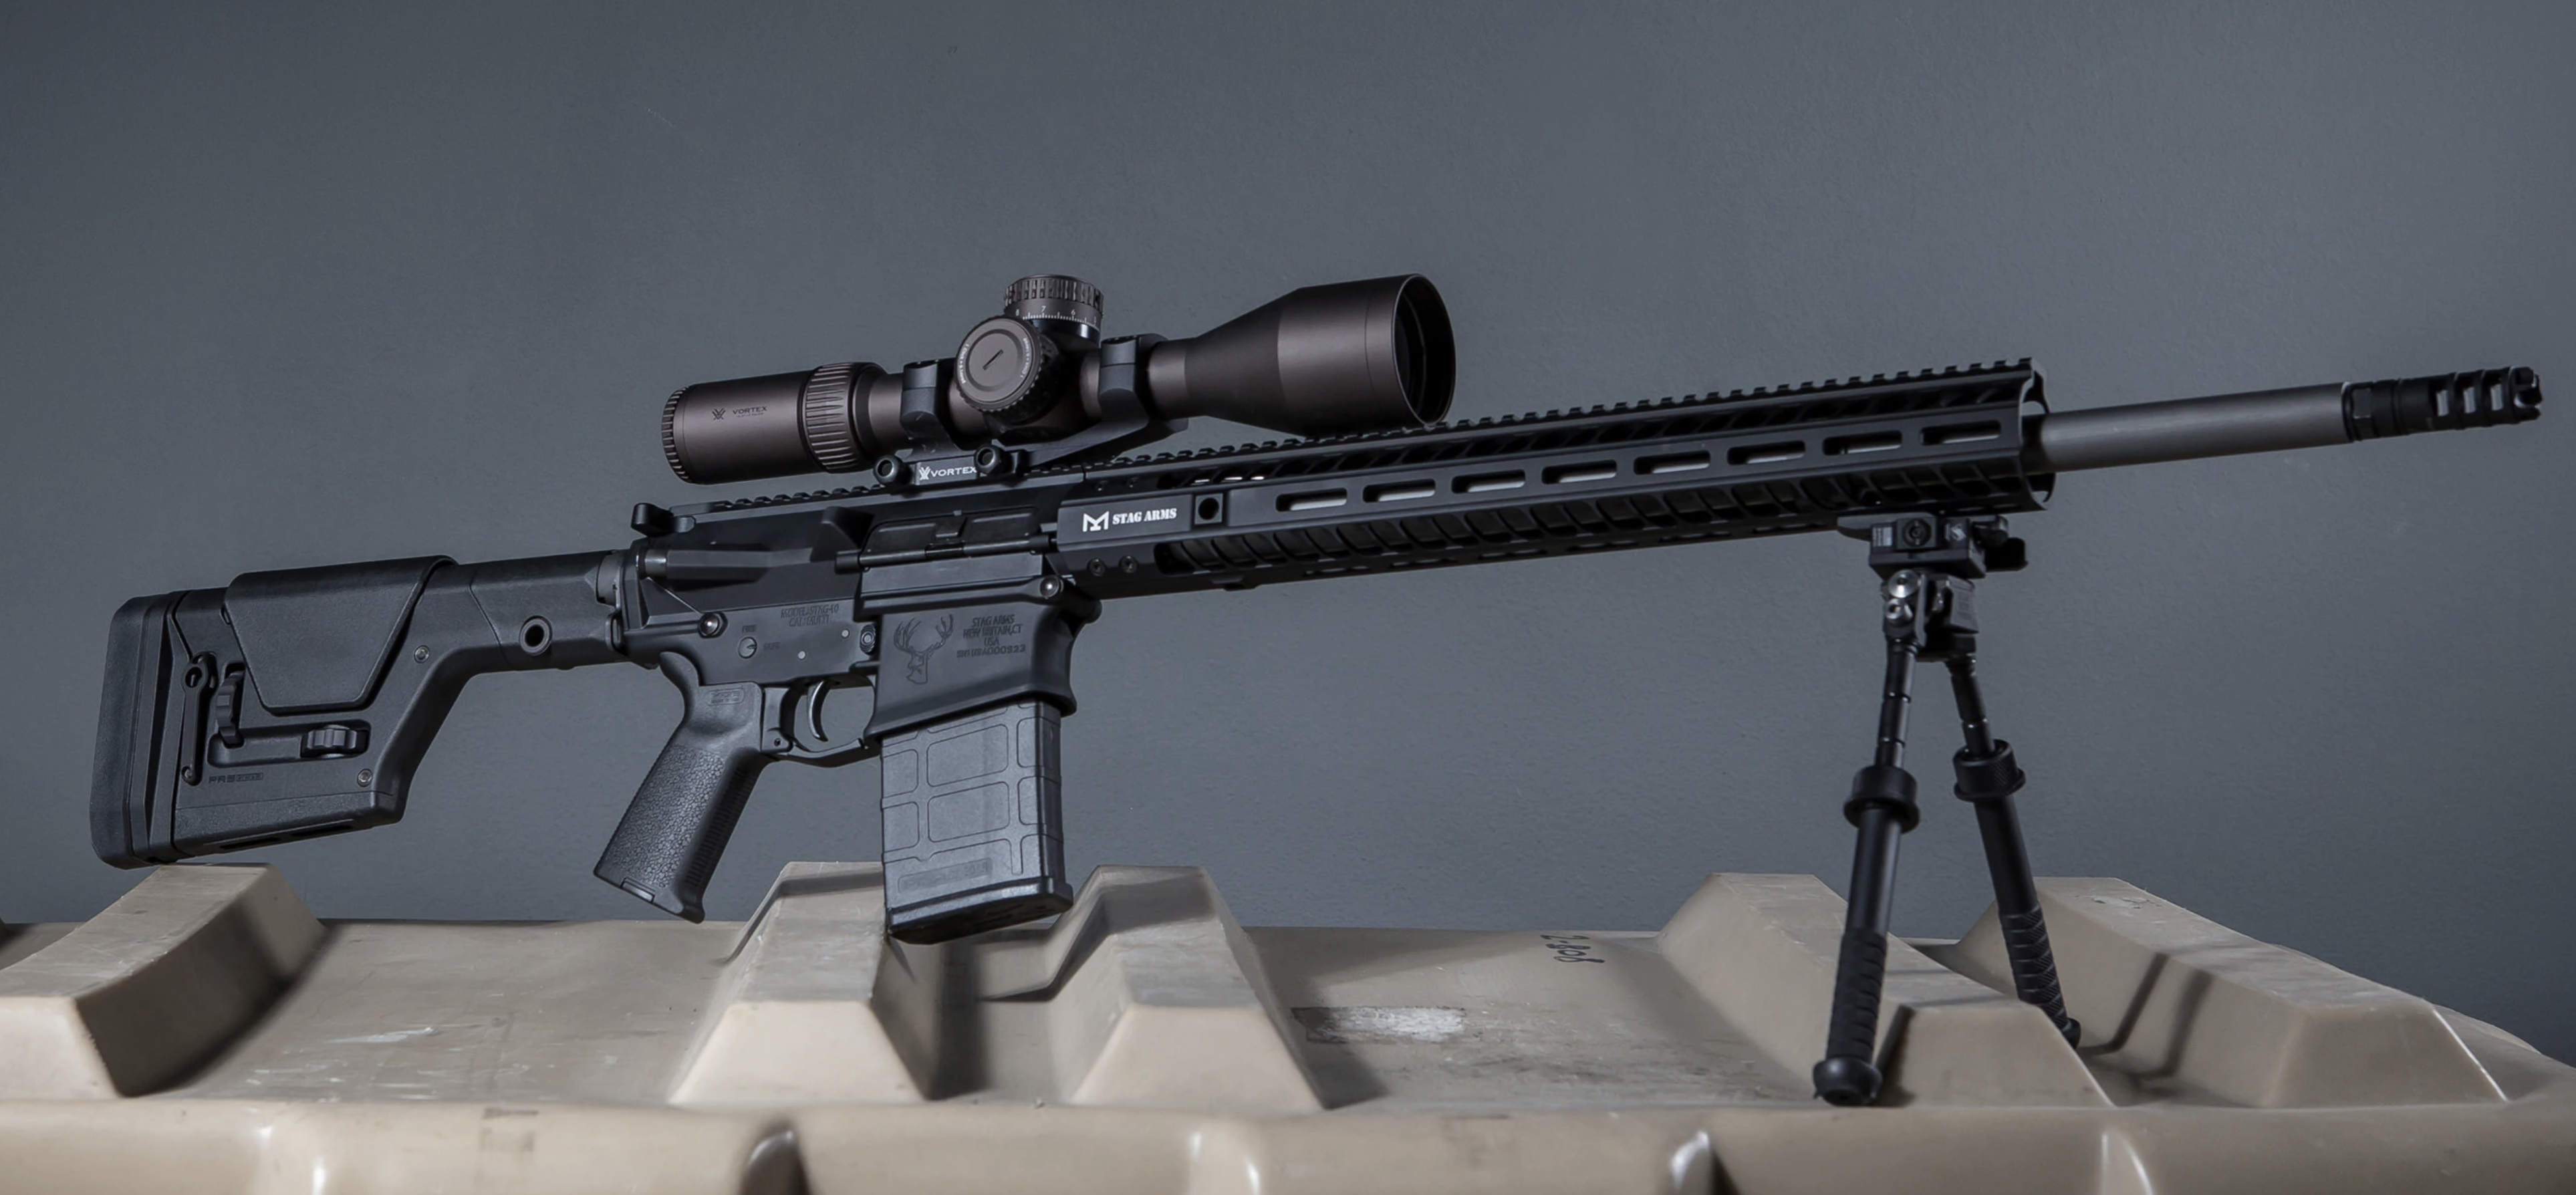 Could This Be The Most Powerful Ar